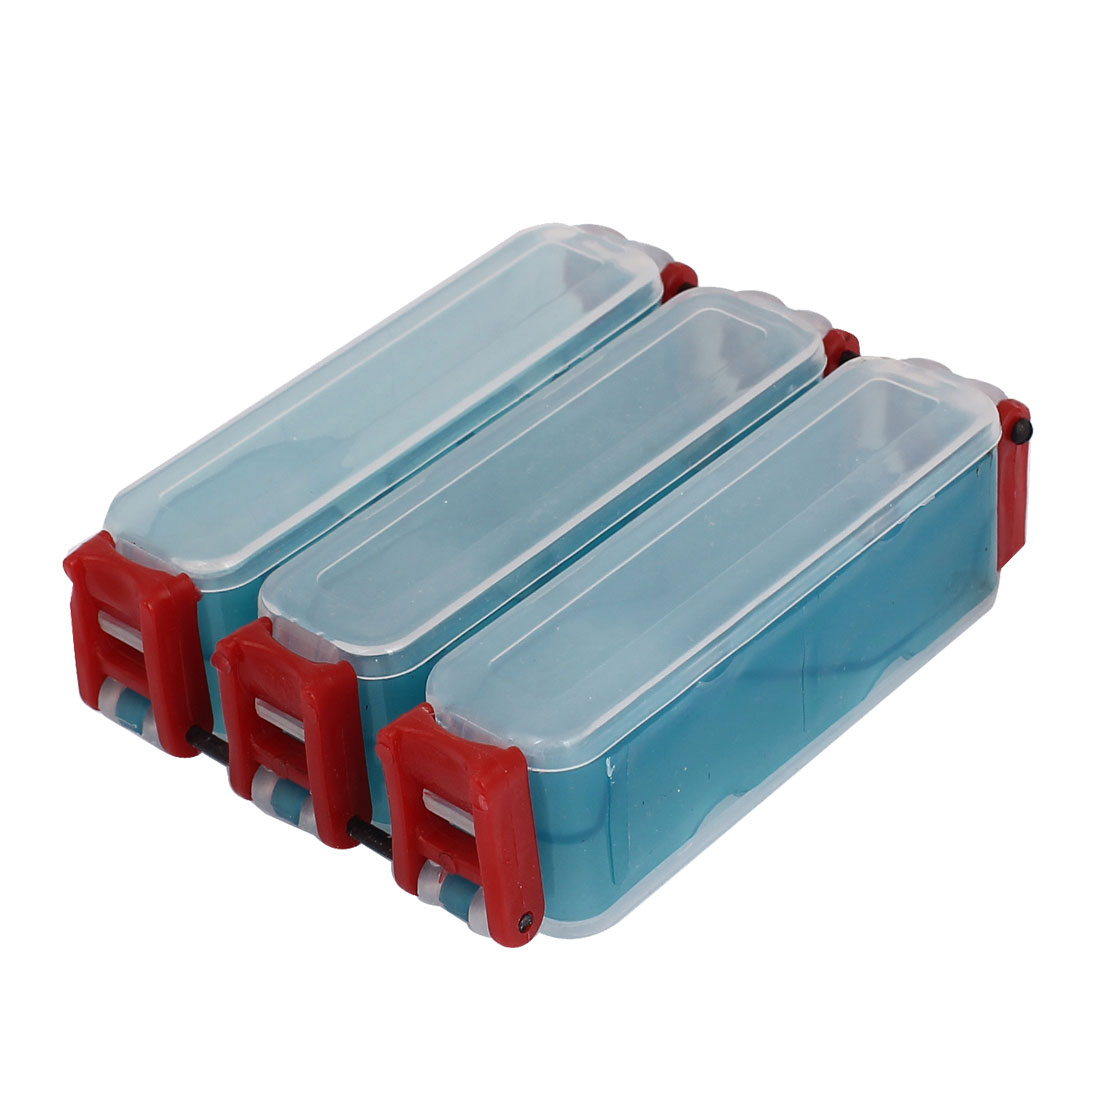 Dual Side 6 Compartments Teal Green Red Waterproof Fishing Lure Tackle Box